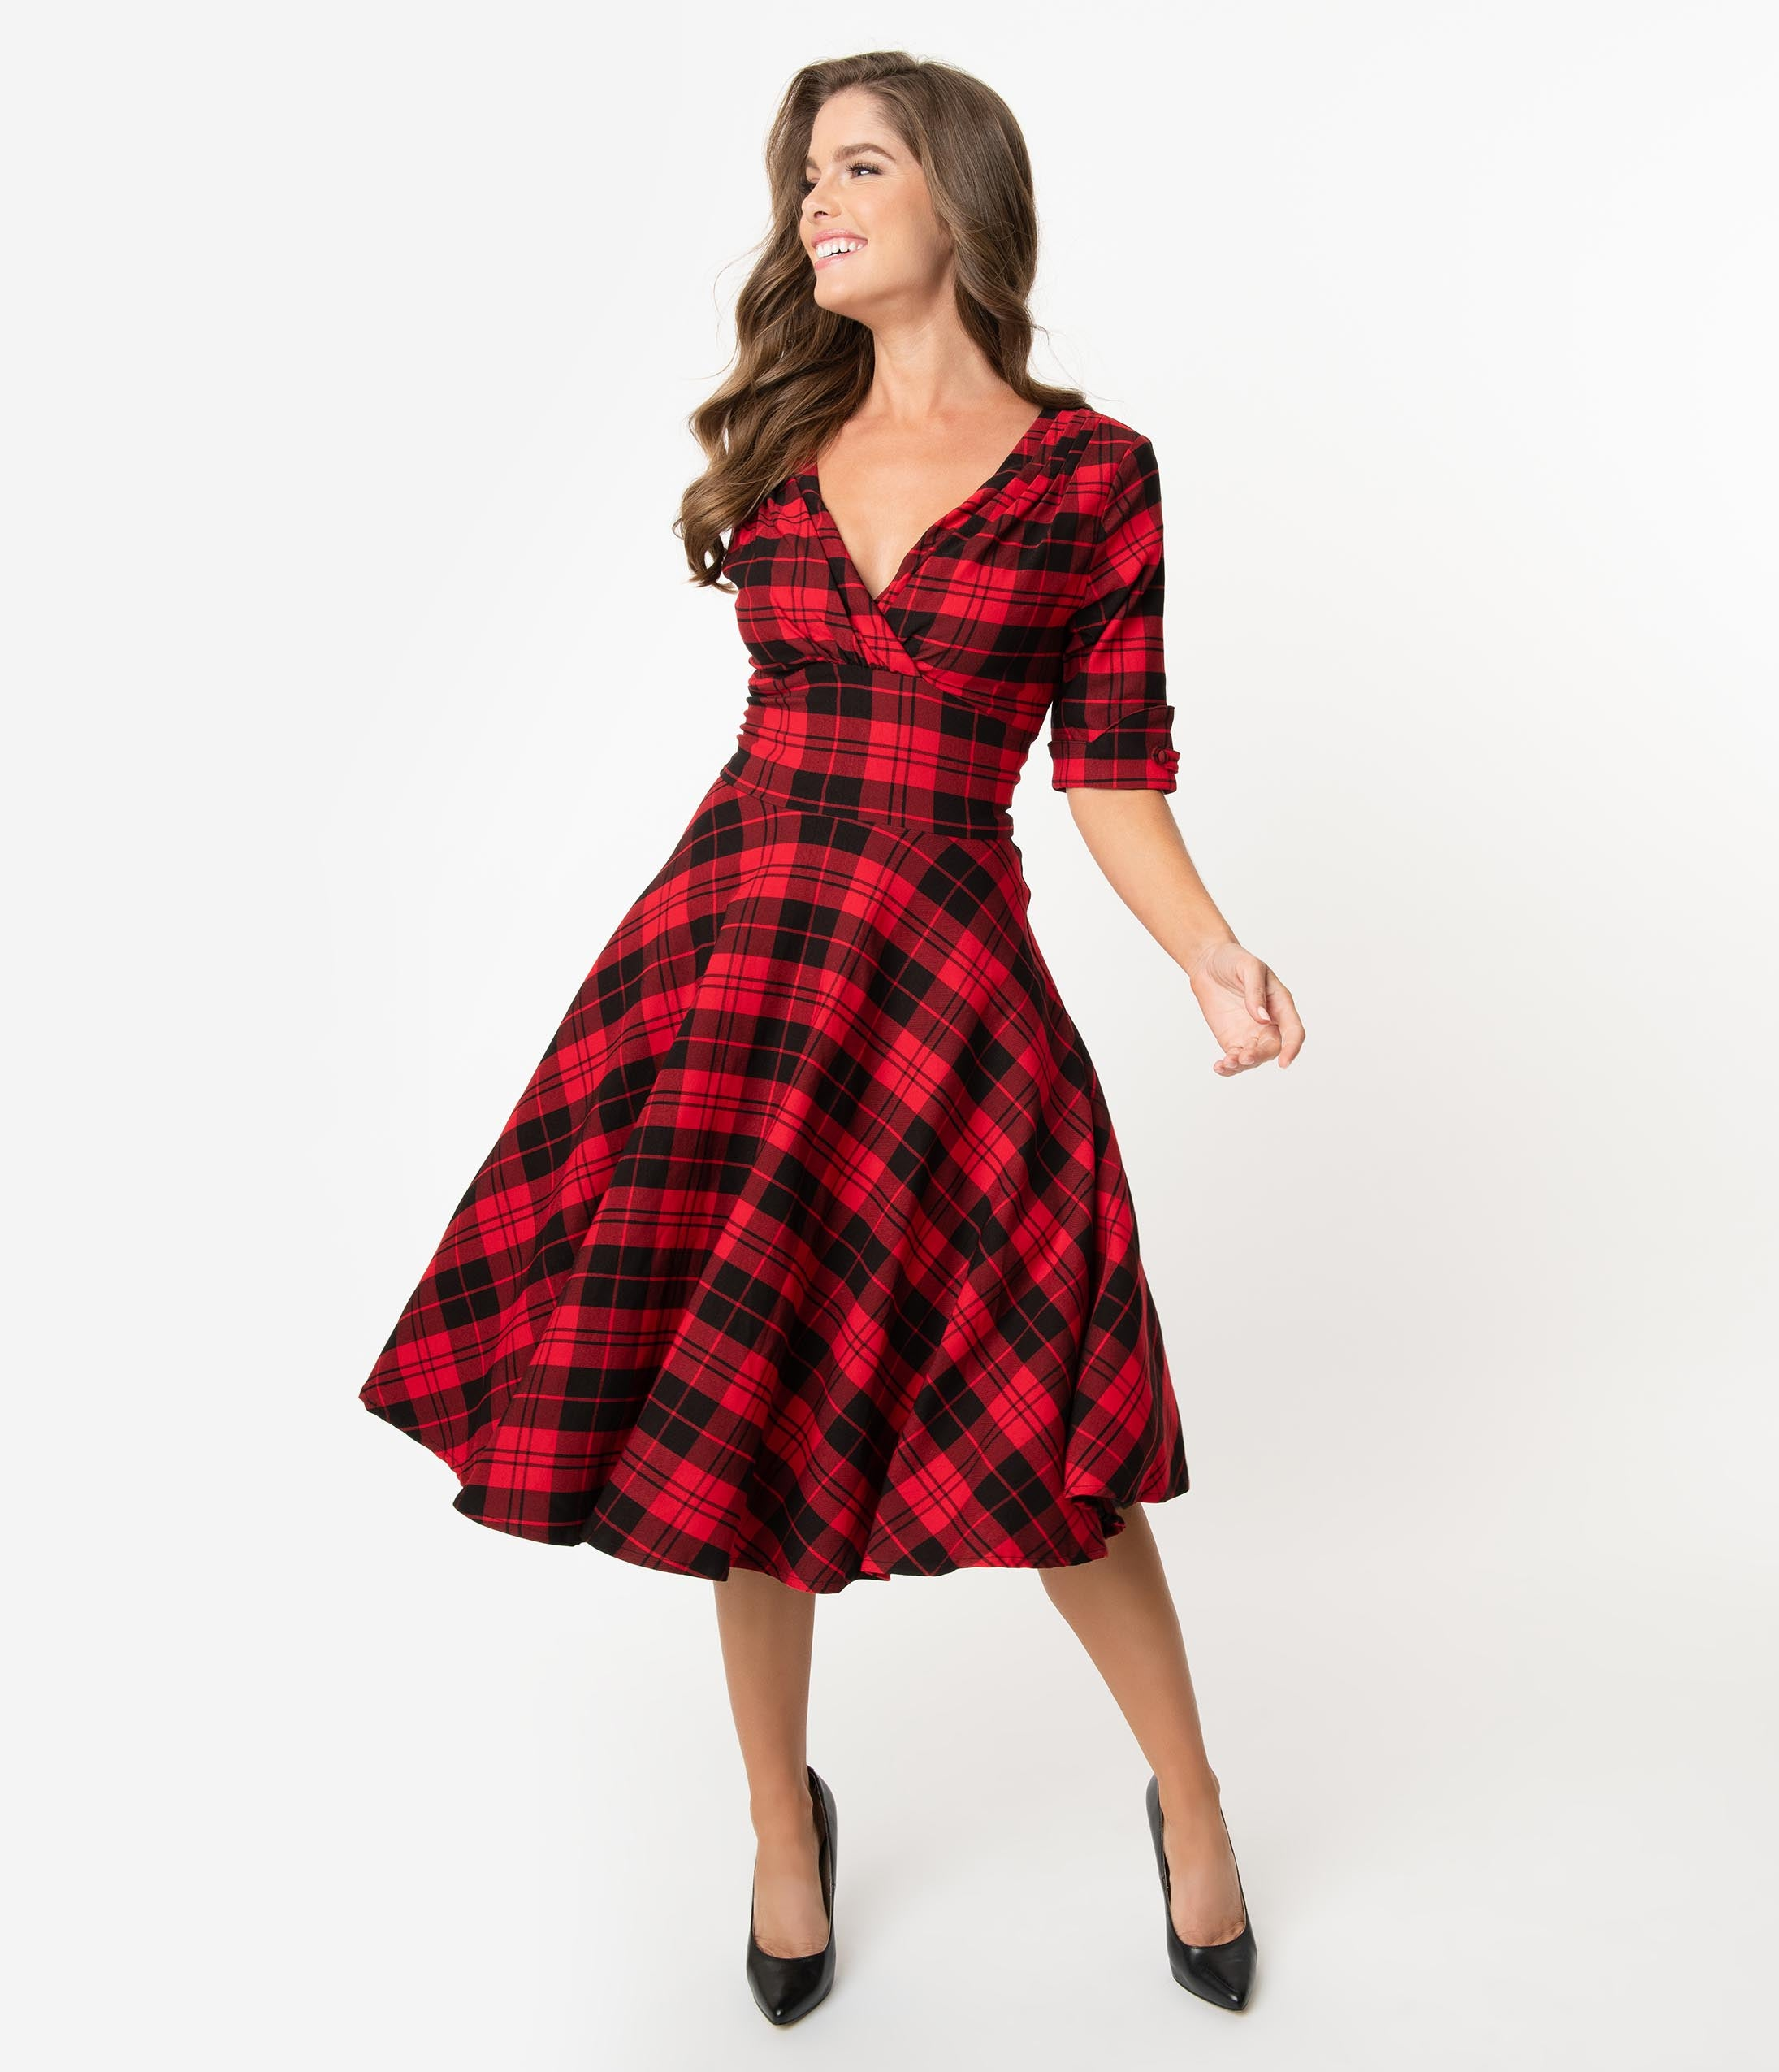 Pin Up Dresses | Pinup Clothing & Fashion Unique Vintage 1950S Red  Black Plaid Delores Swing Dress With Sleeves $98.00 AT vintagedancer.com